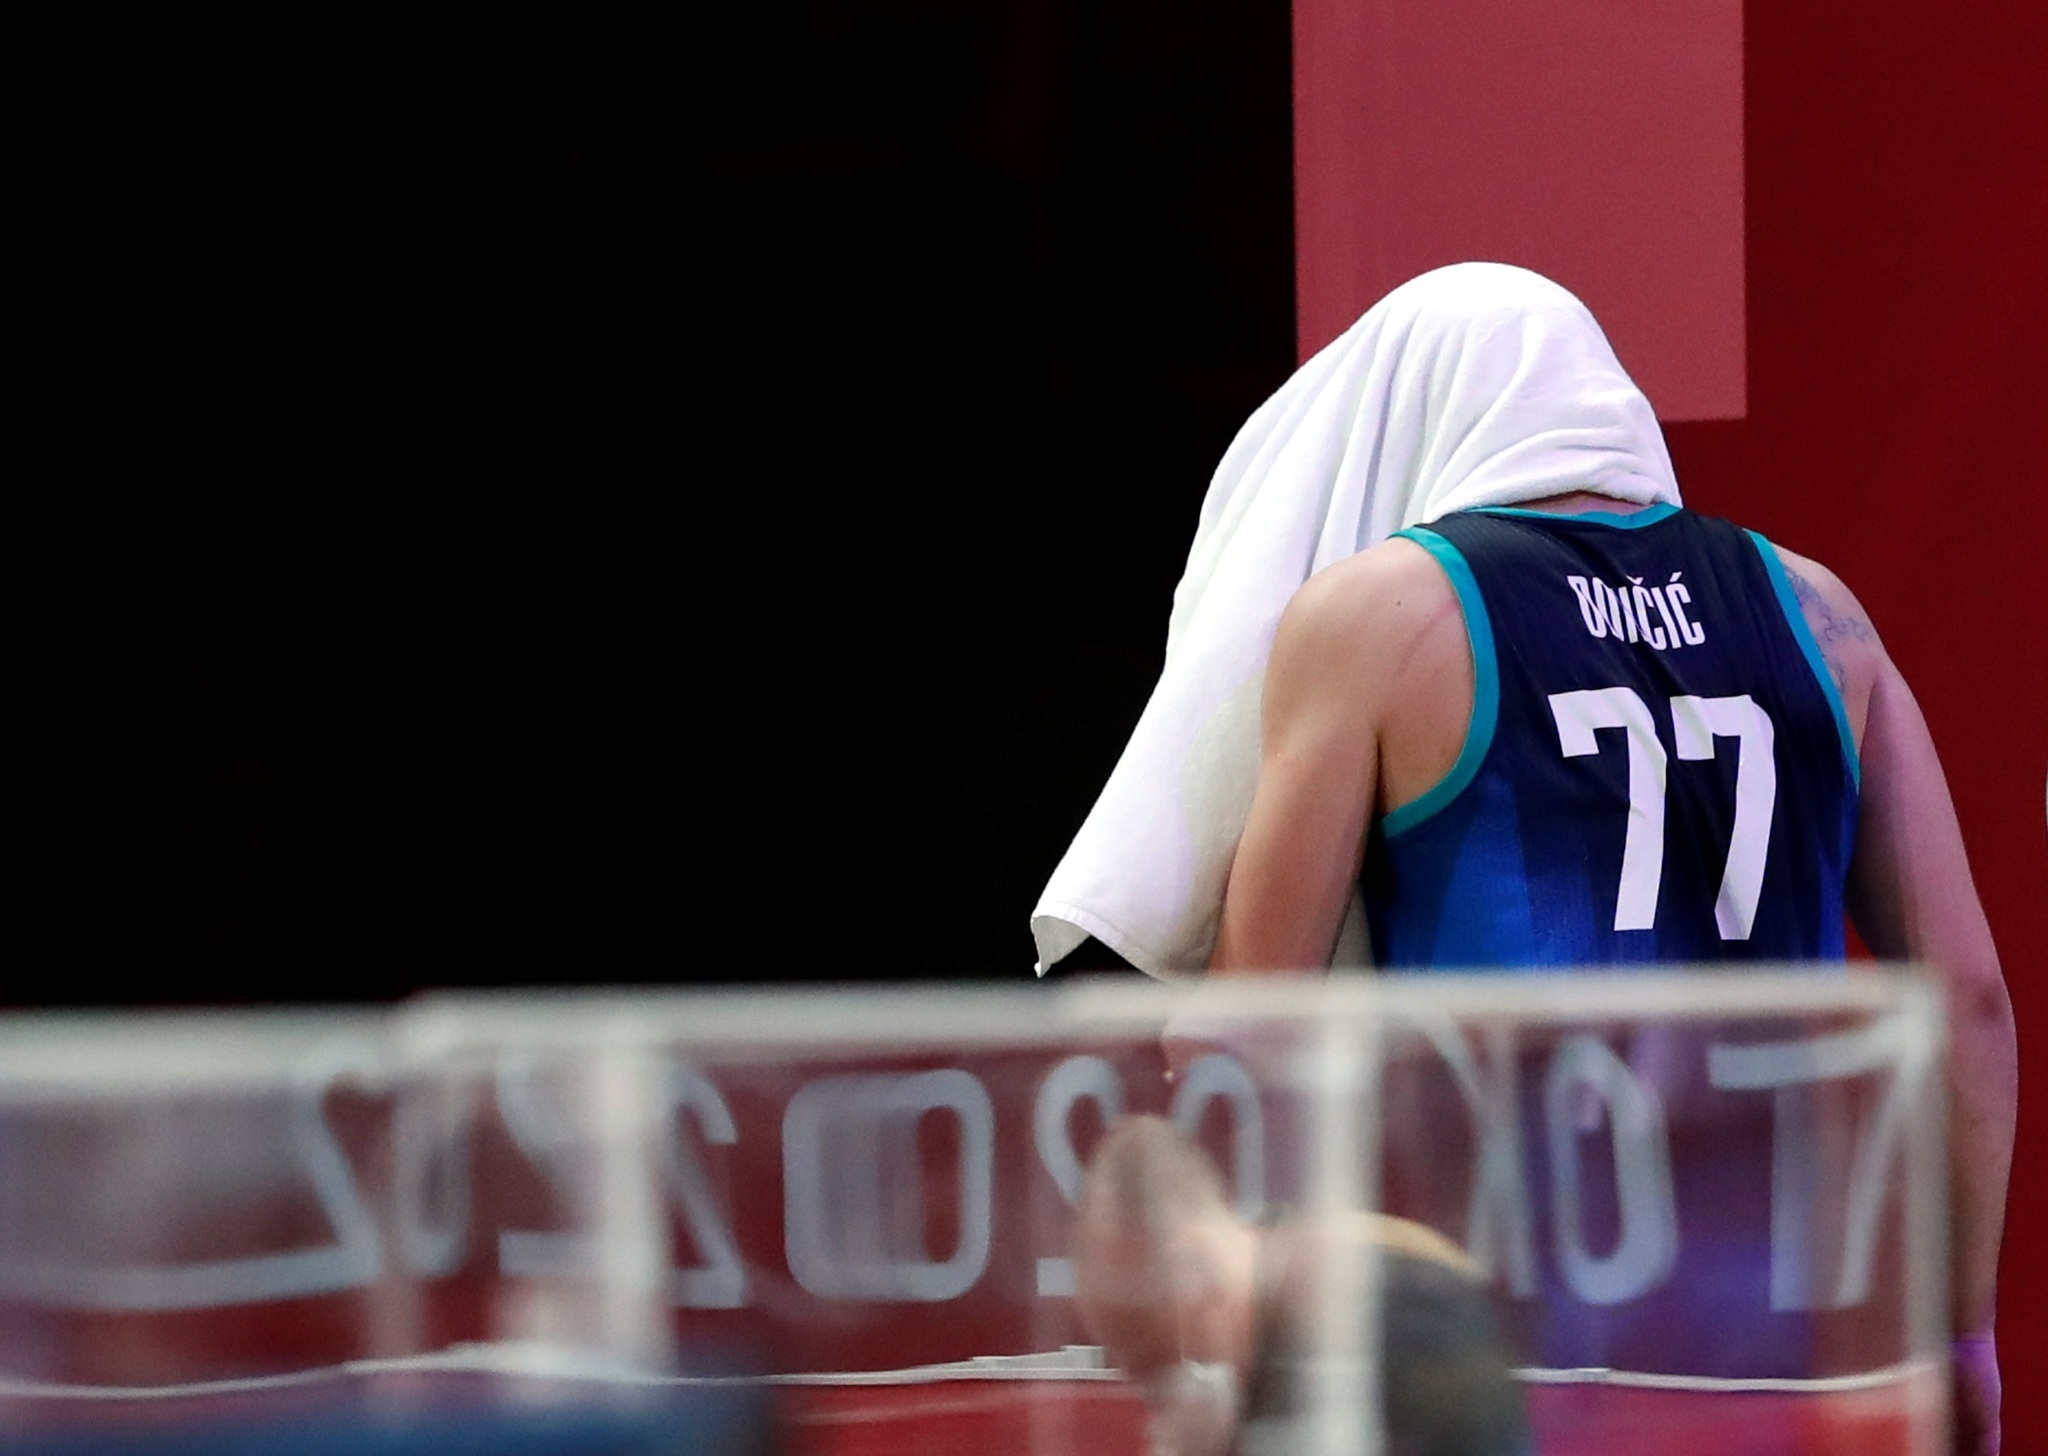 Slovenia star Luka Doncic leaves the arena after his team's loss against France.